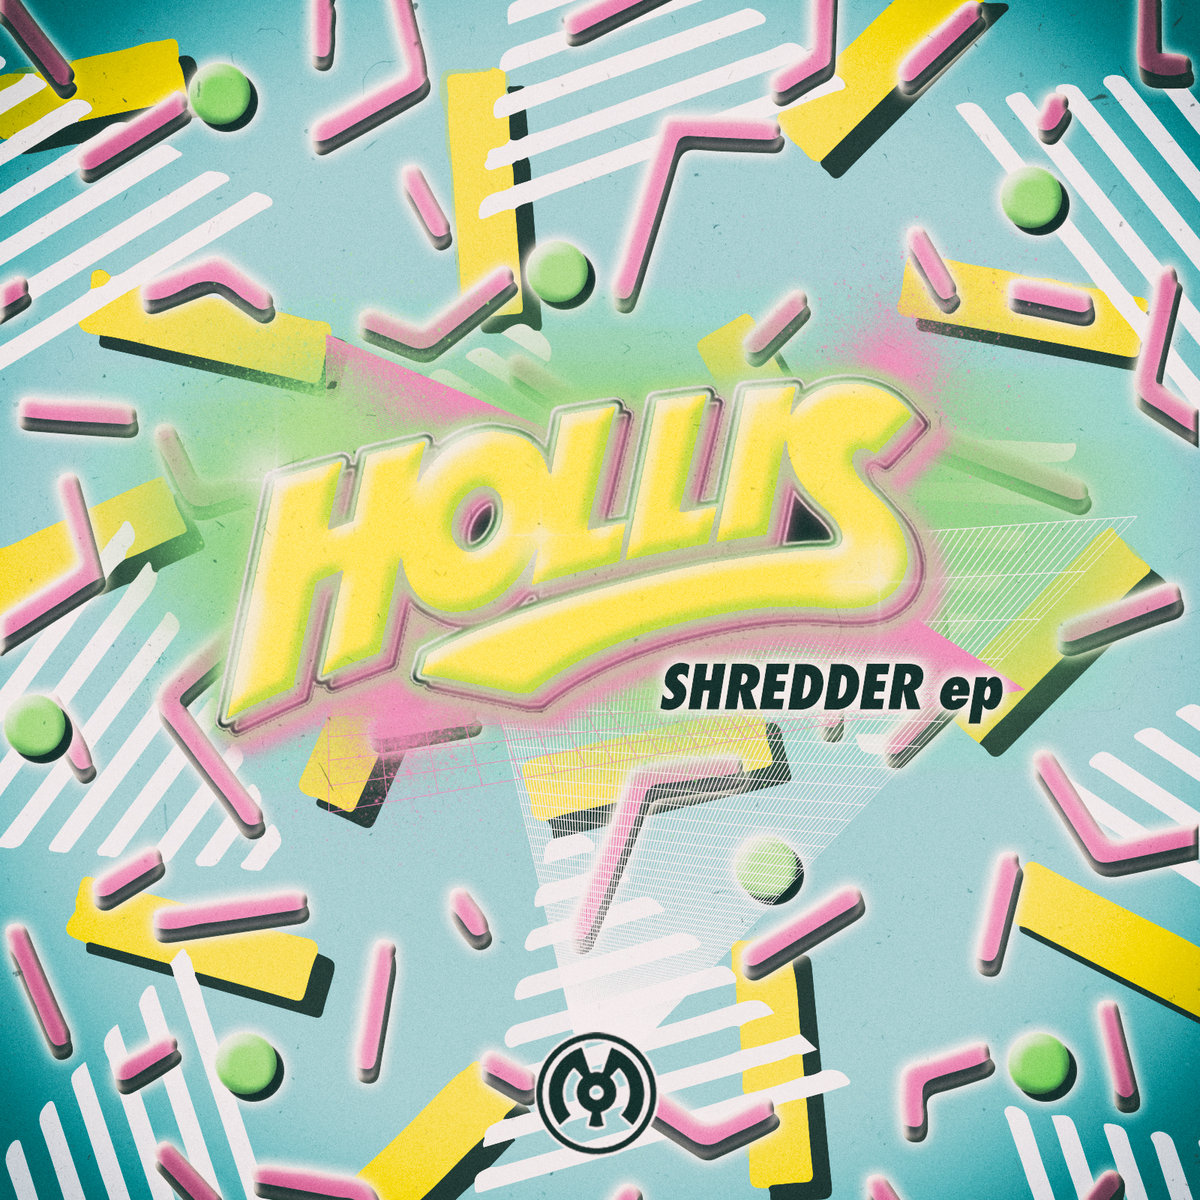 Hollis - Shredder @ 'Shredder EP' album (electronic, dubstep)